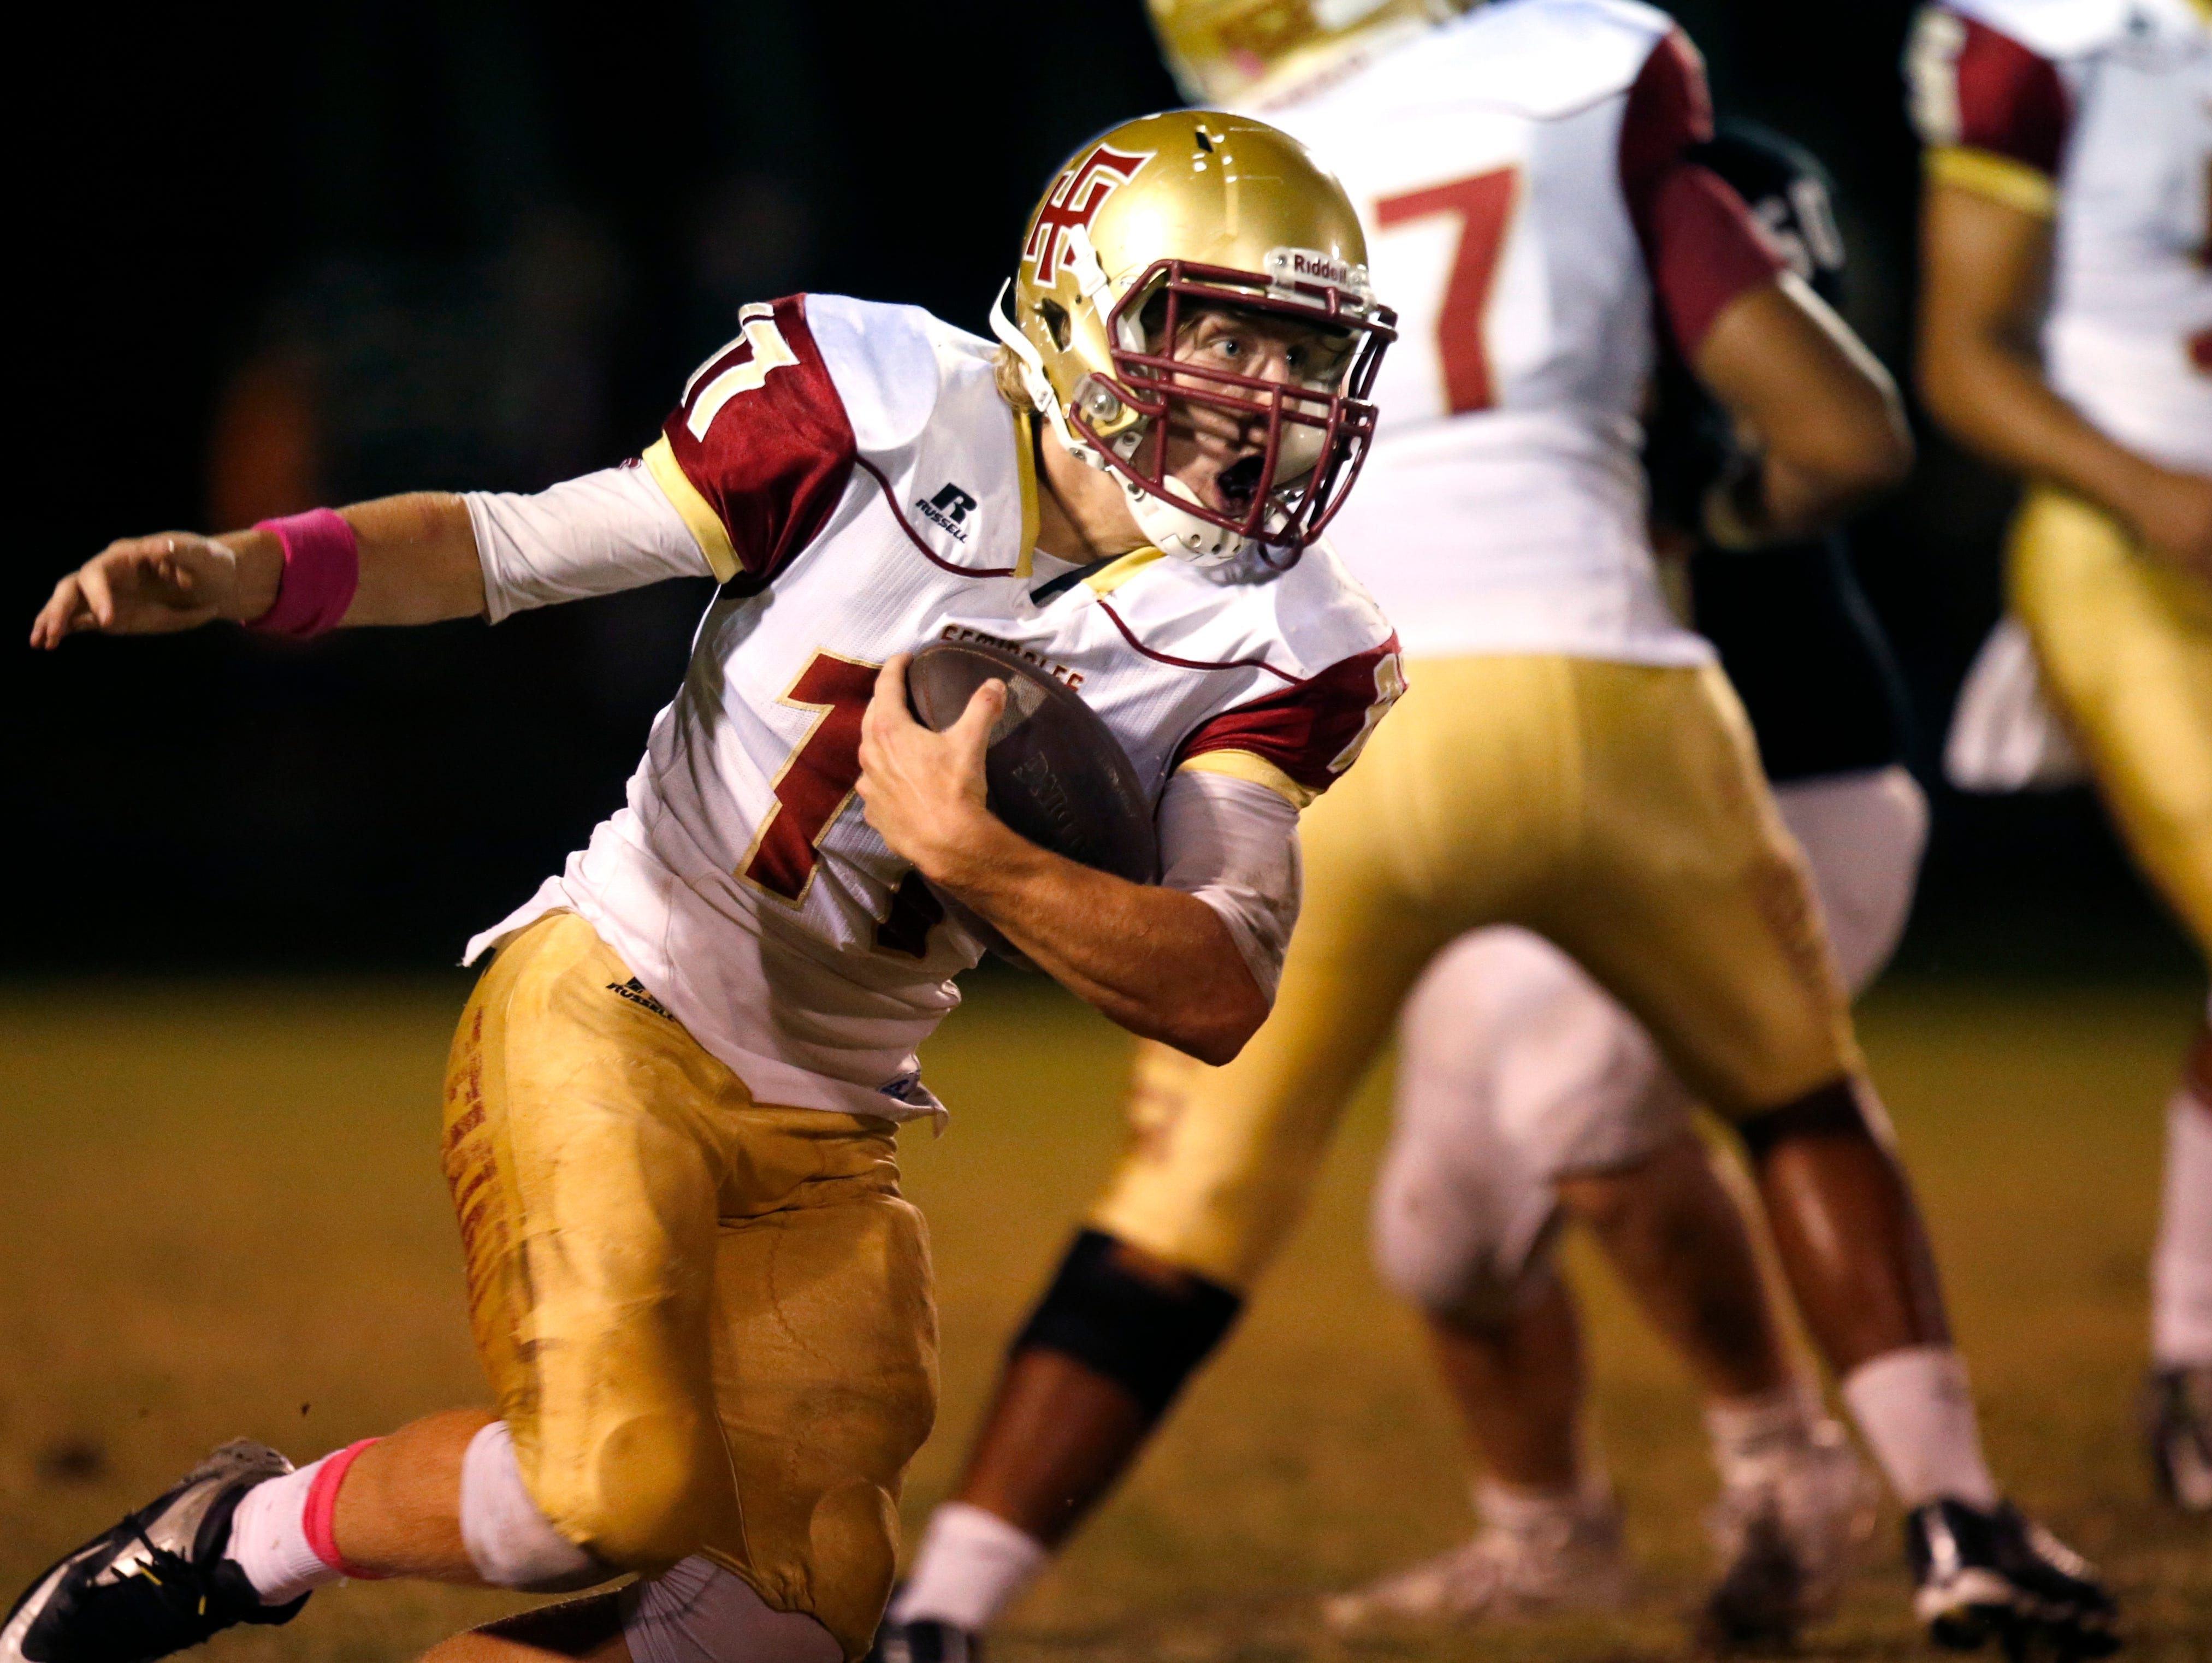 Florida High's Mike Greaves runs the ball against NFC on Friday.